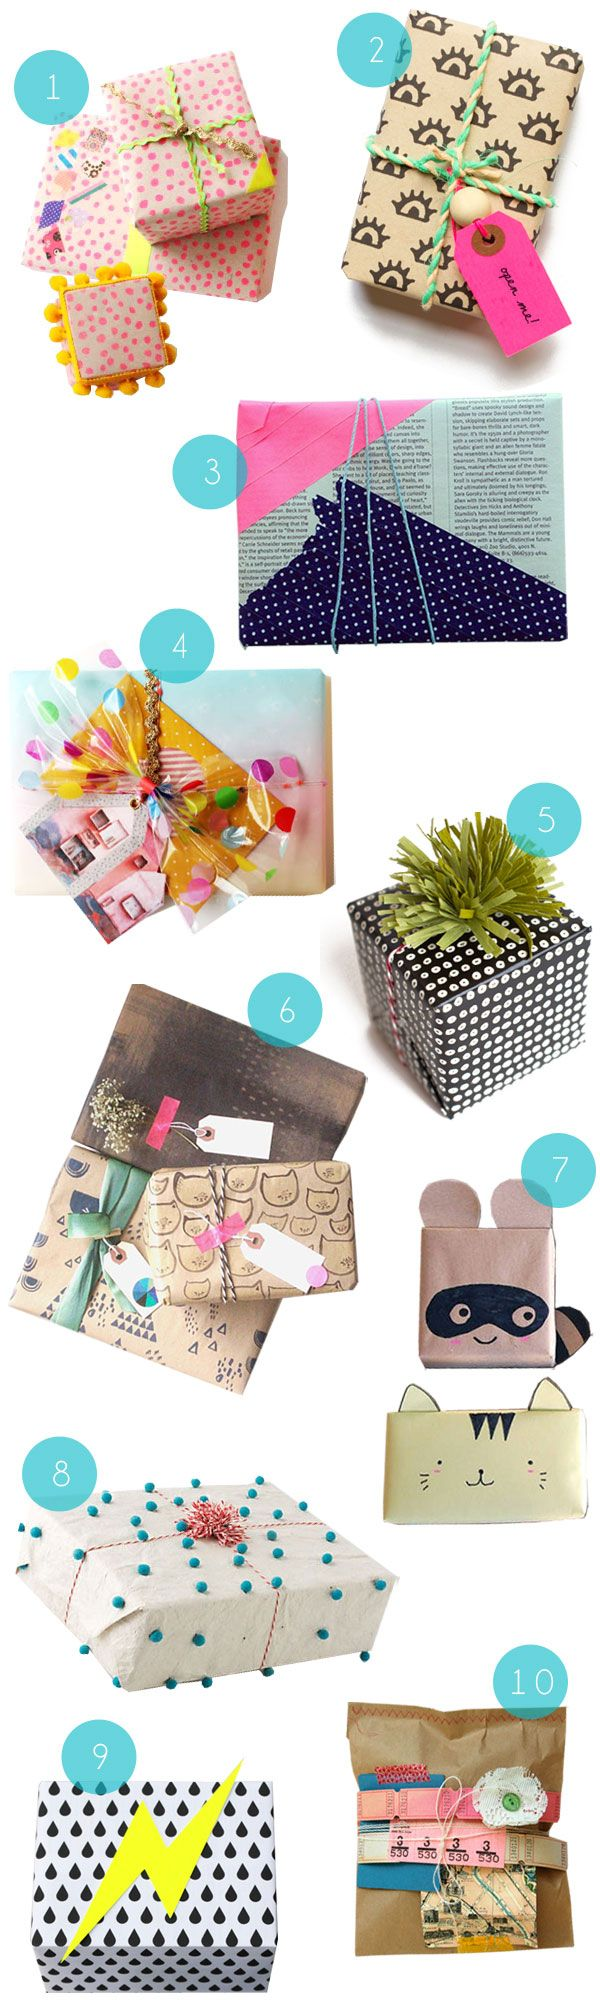 Wrapping Inspiration - Oh Happy Day!